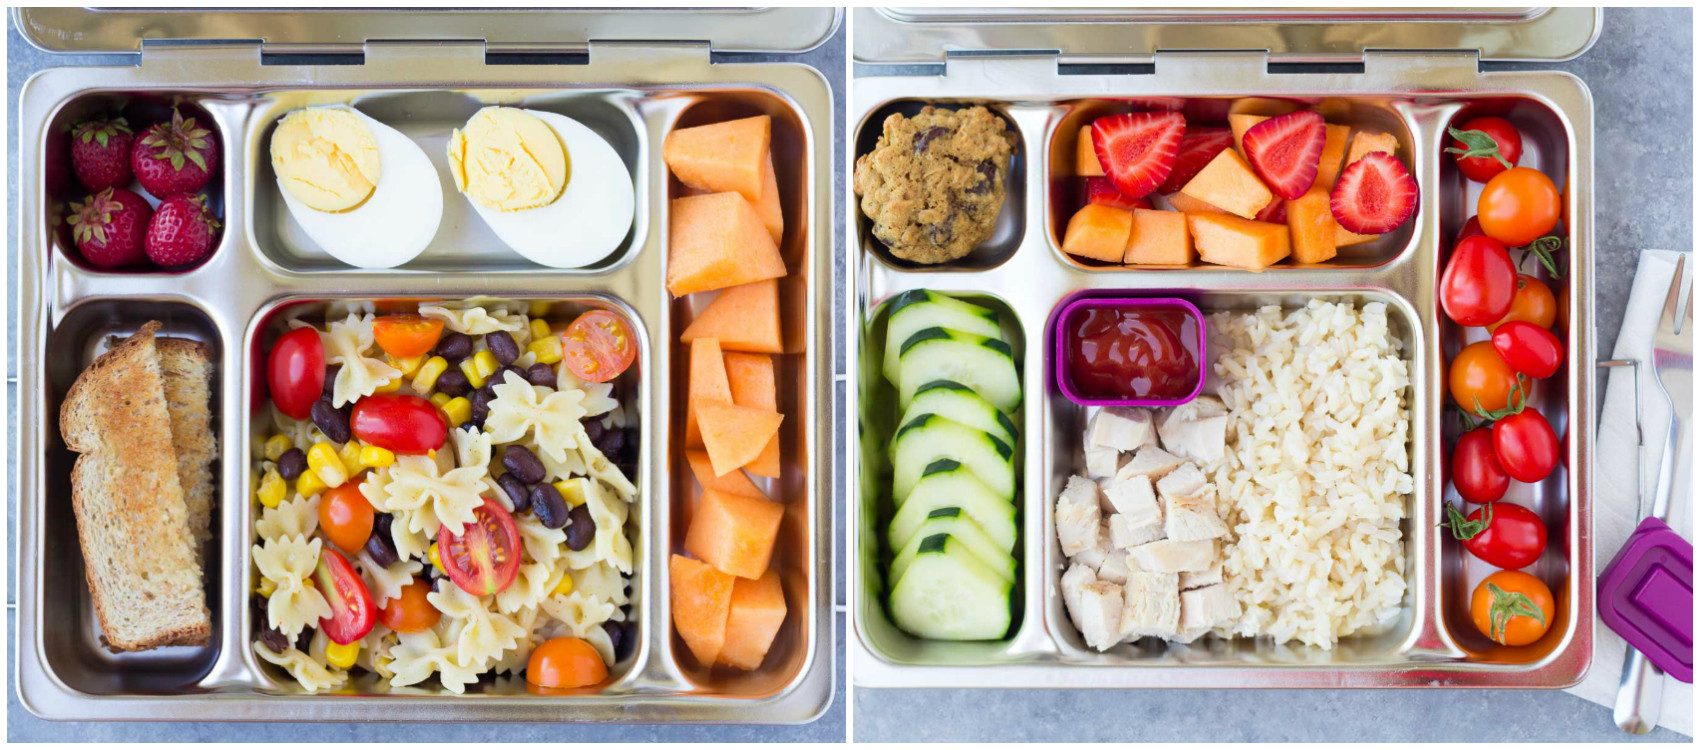 Healthy Foods For Kids' School Lunches  10 Healthy School Lunches for Kids Kristine s Kitchen